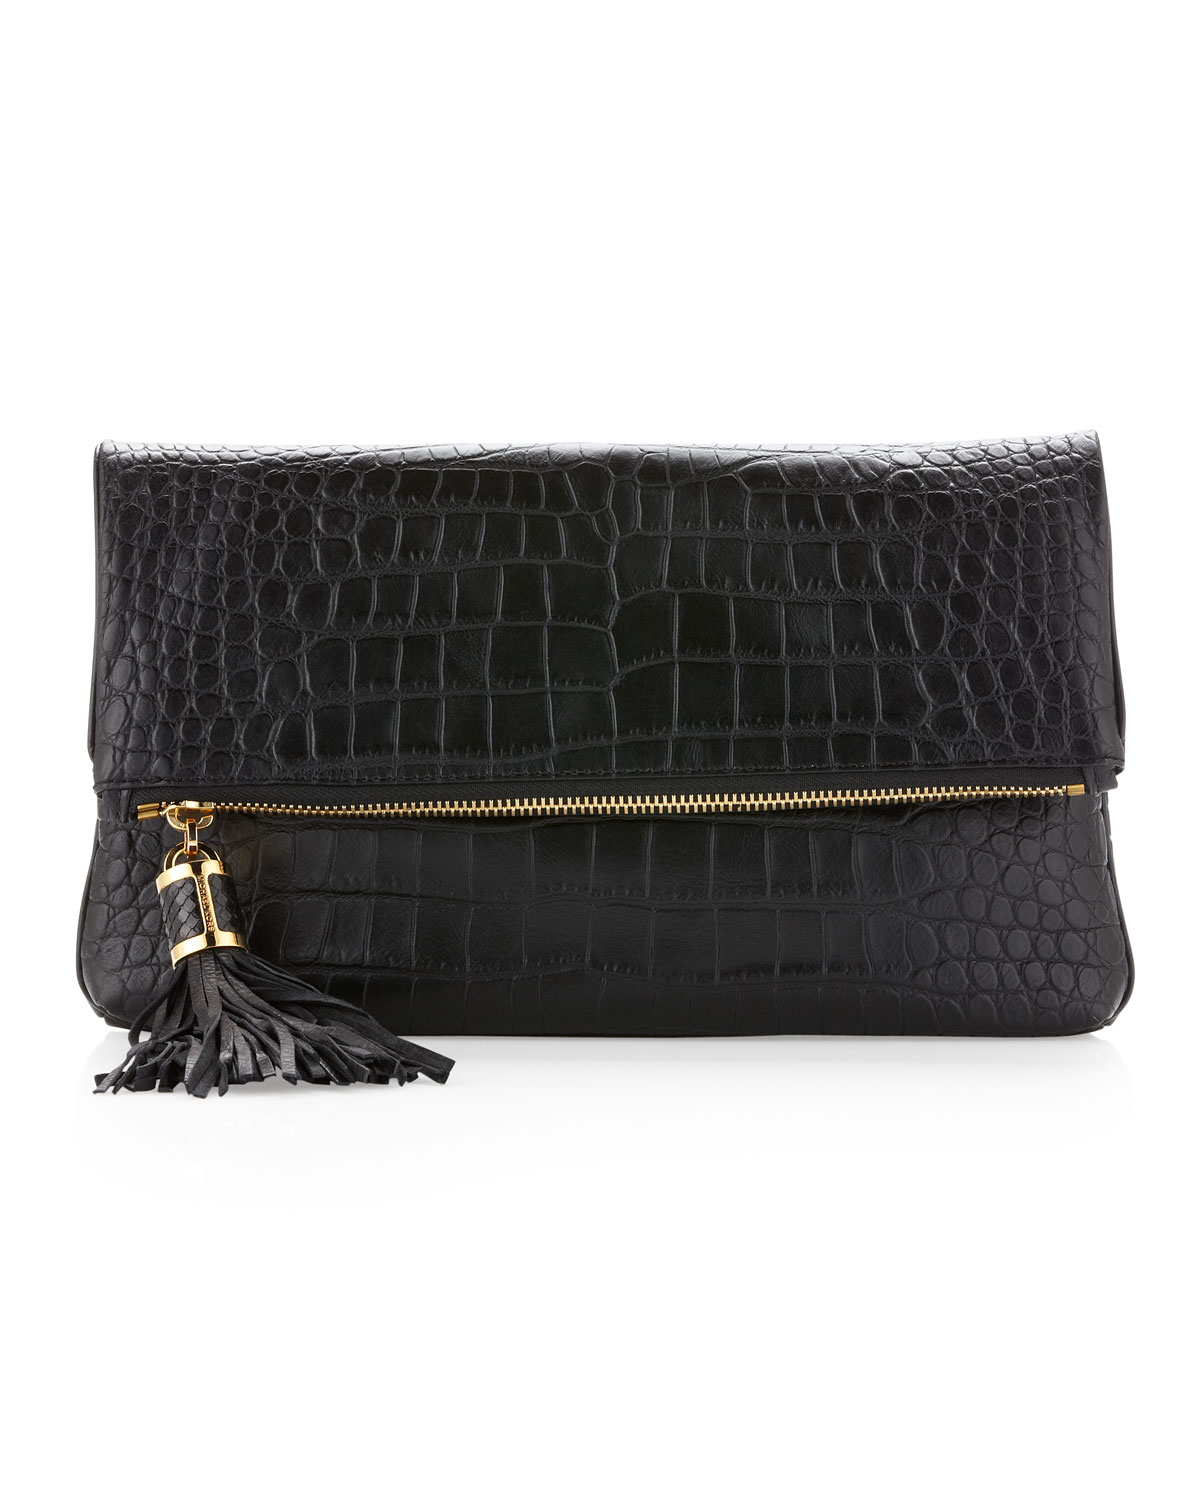 michael kors large tonne foldover clutch bag in black lyst. Black Bedroom Furniture Sets. Home Design Ideas